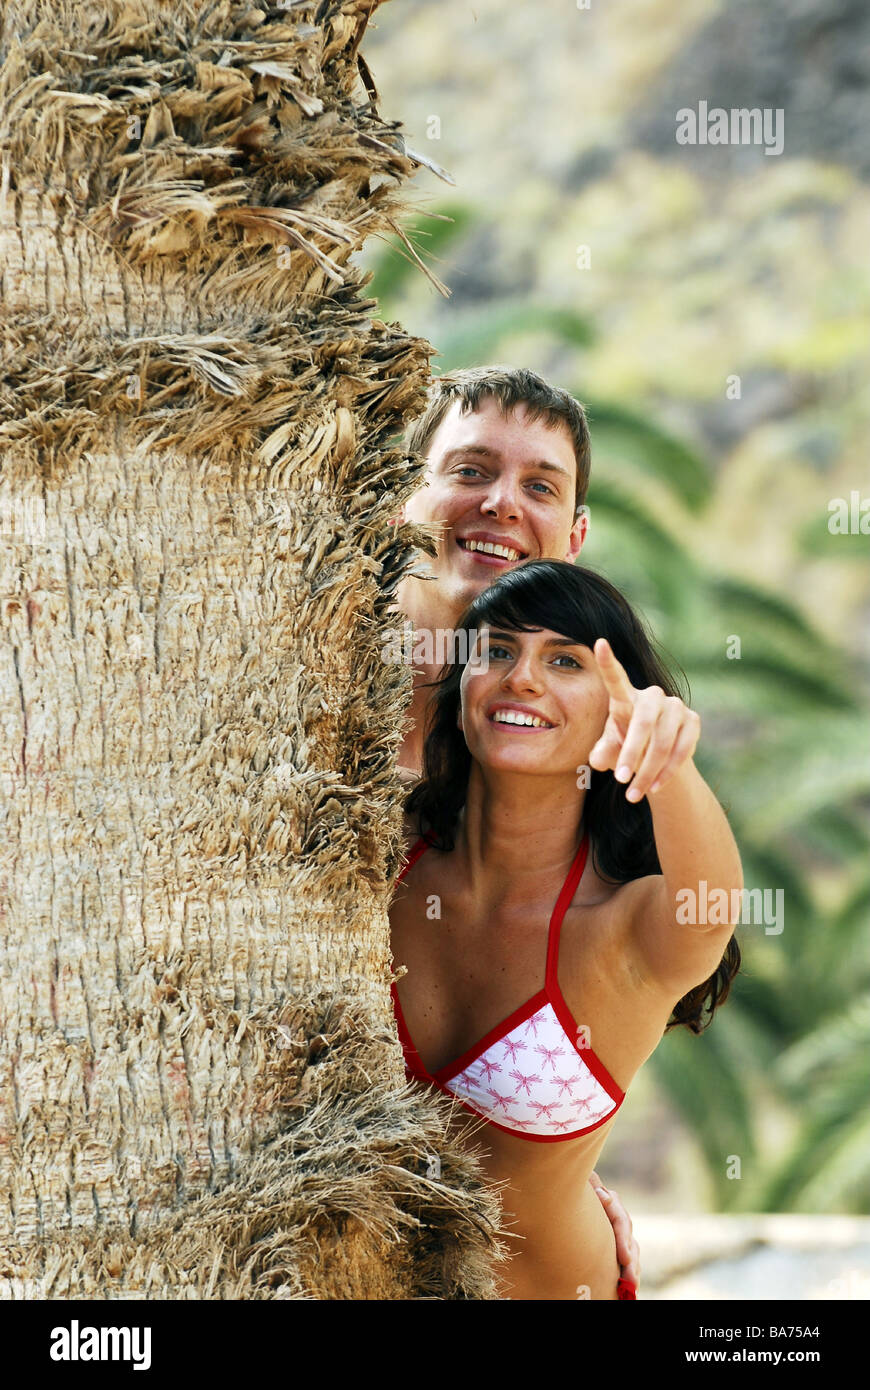 Mate young smiles gesture shows portrait palm trunk detail 20-30 years outside bath-clothing observation relationship - Stock Image